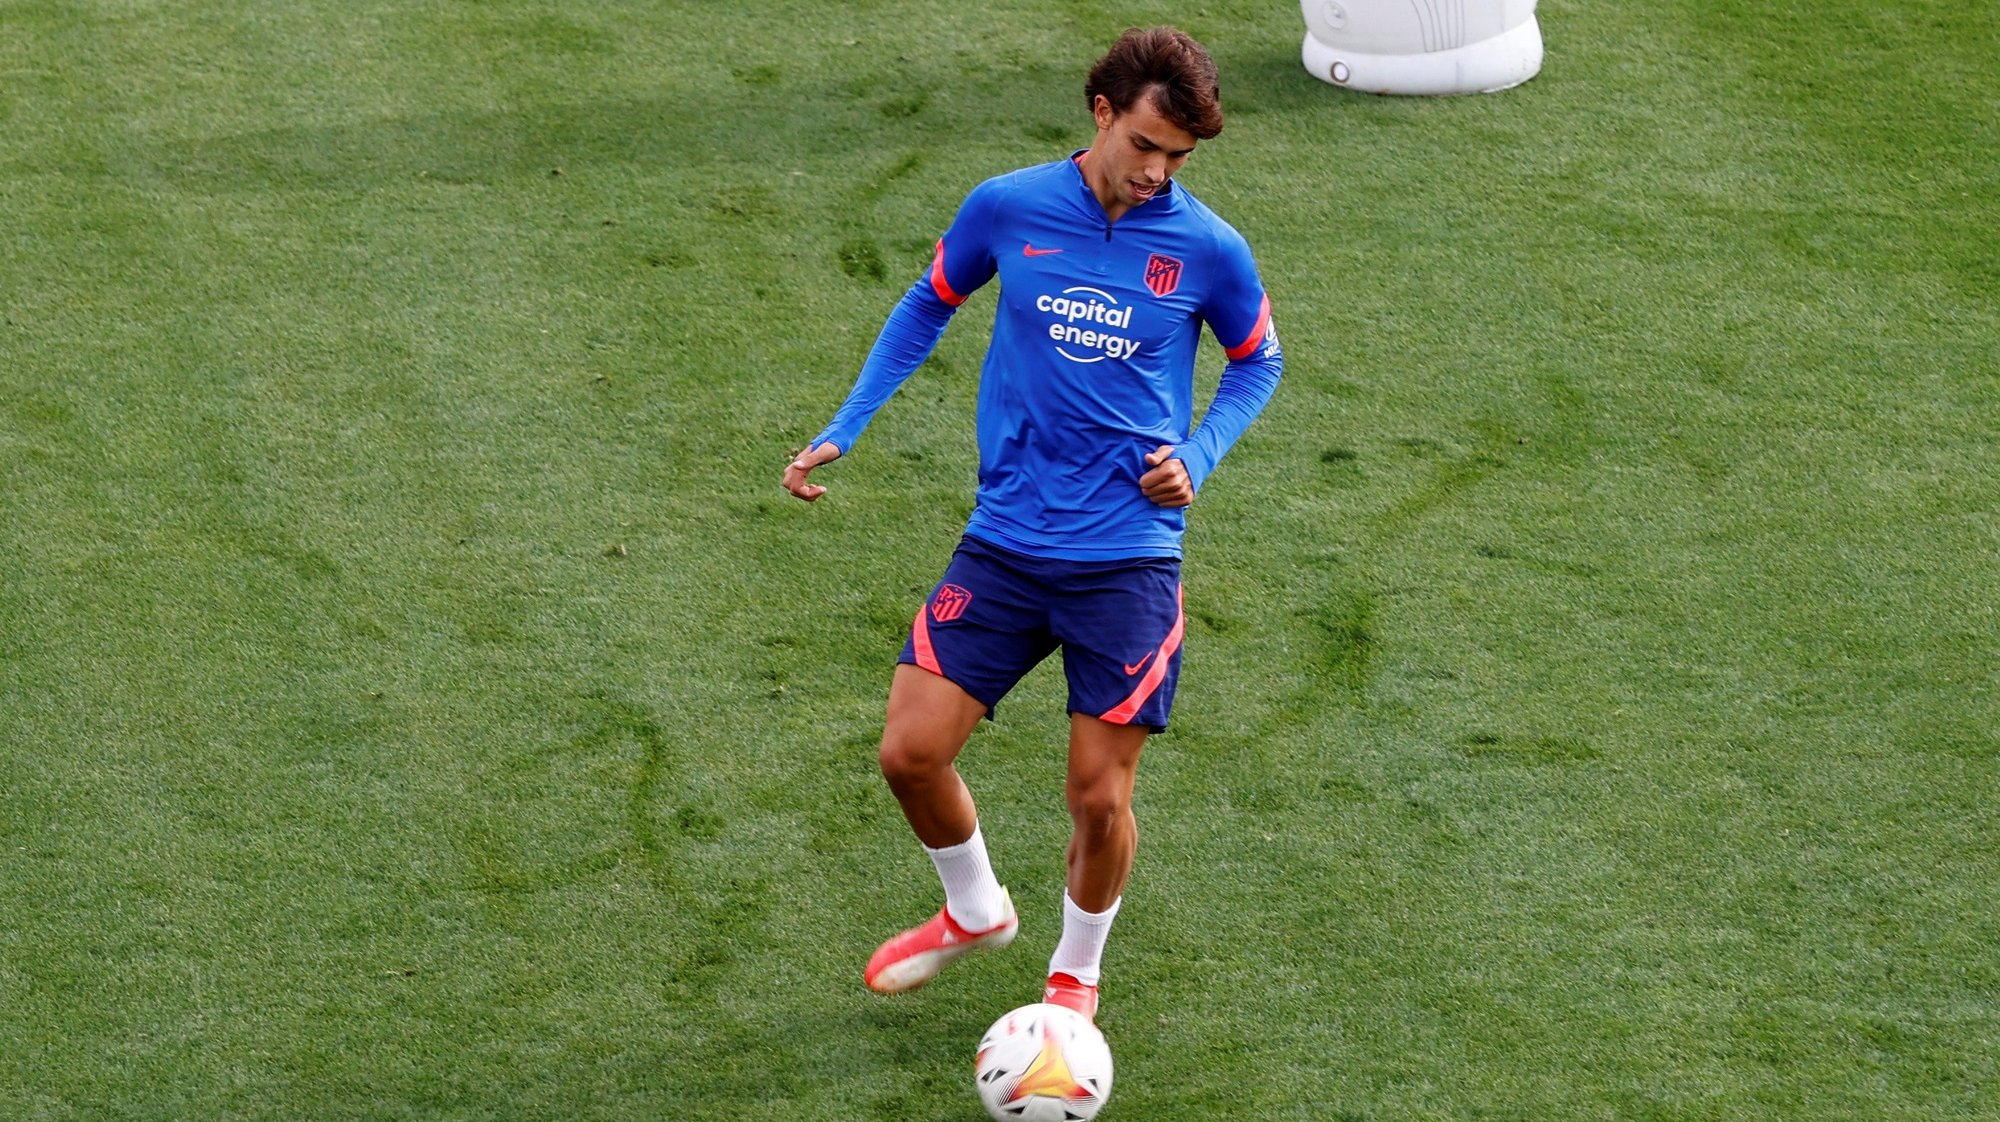 epa09460704 Atletico Madrid's Portuguese striker Joao Felix takes part in a training session of the team at Wanda Sports City in Majadahonda, Madrid, Spain, 11 September 2021. Atletico Madrid will play a LaLiga soccer match against RCD Espanyol on 12 September.  EPA/J.J. Guillen